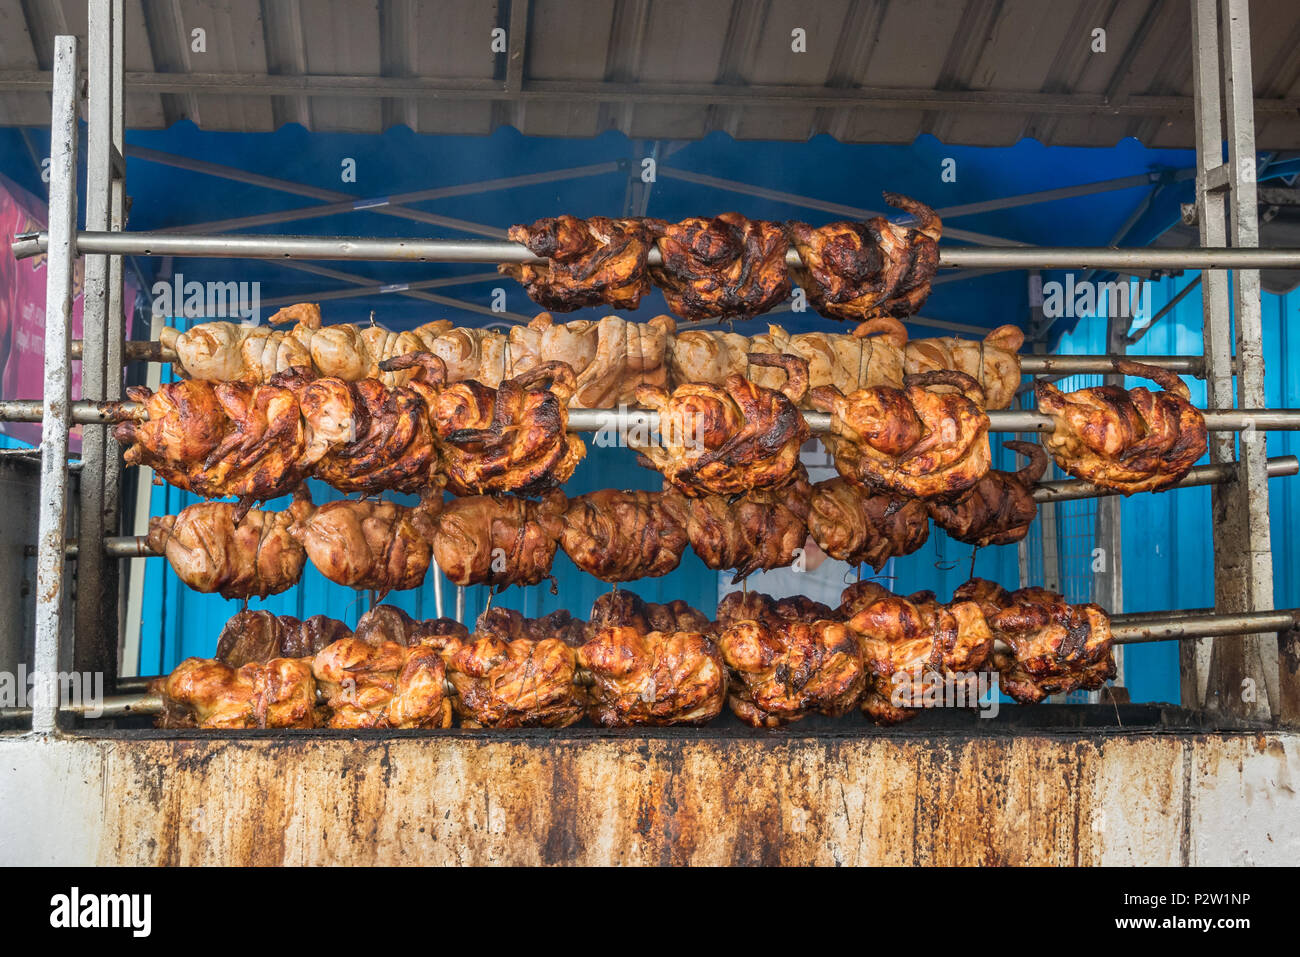 Roasted chicken marvelous selling in Ramadan bazaar. - Stock Image